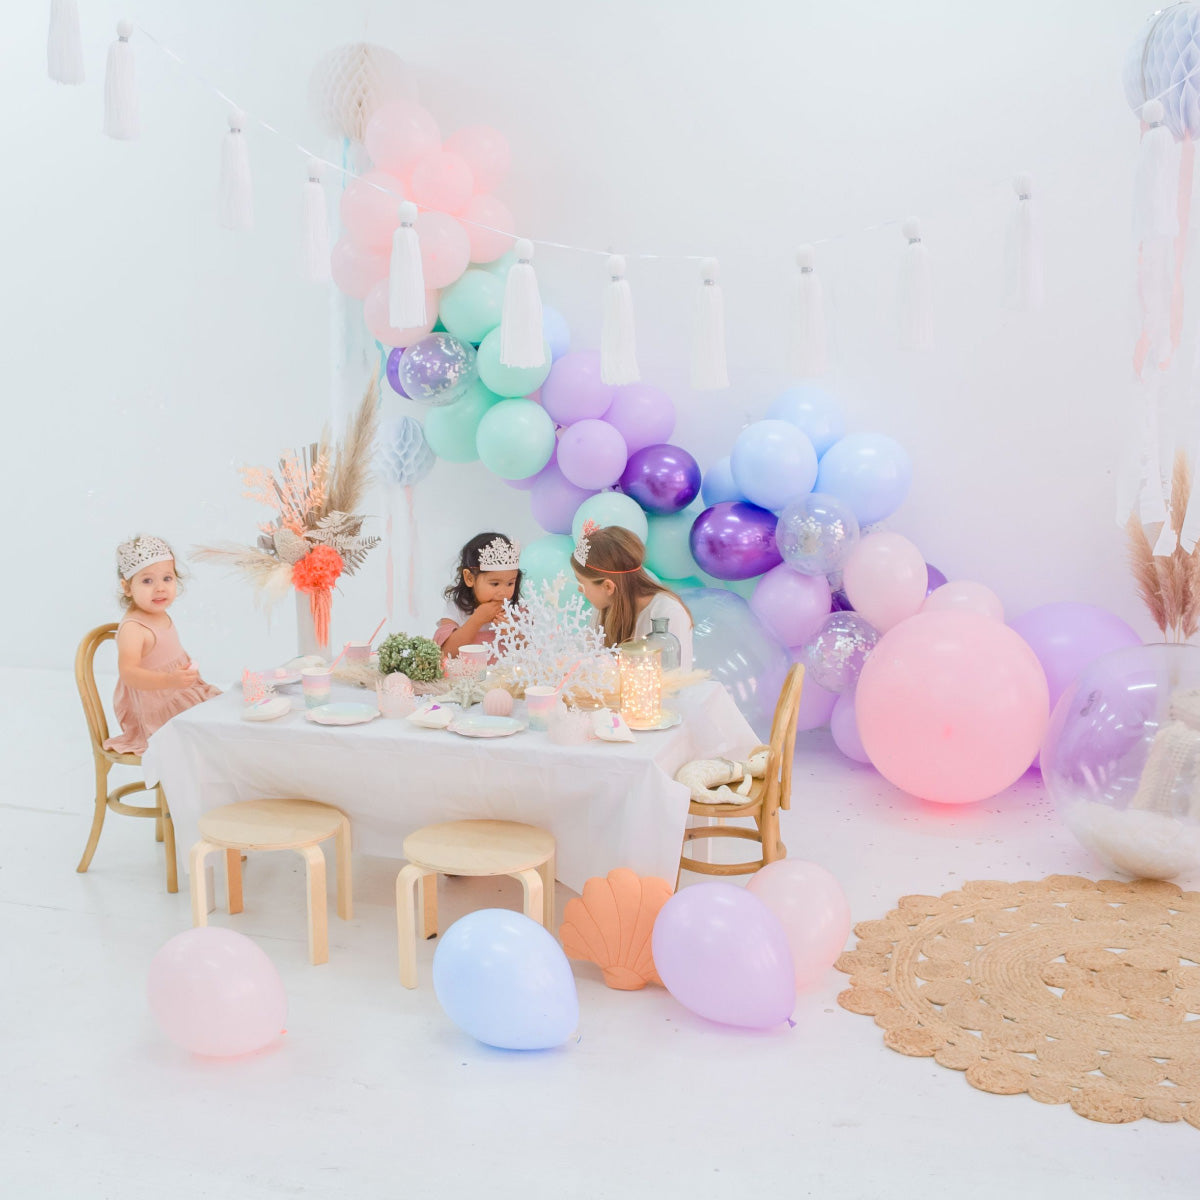 10 Tips for Creating a Balloon Display with Style and Ease